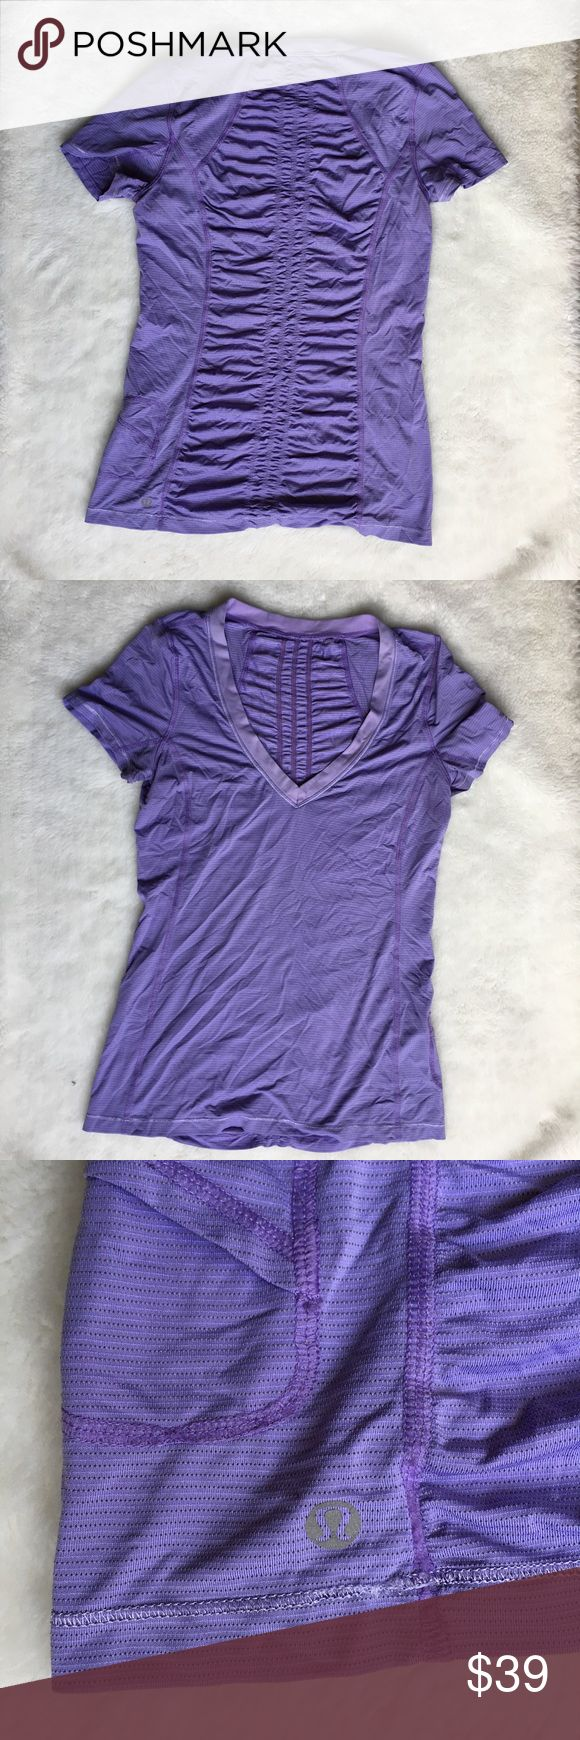 Lululemon Purple Short Sleeve Top size 4 Preowned authentic Lululemon Purple Short Sleeve Top size 4. No builtin bra or pads. Rouched back detail.  Please look at pictures for better reference. Happy shopping!! T1 lululemon athletica Tops Tees - Short Sleeve